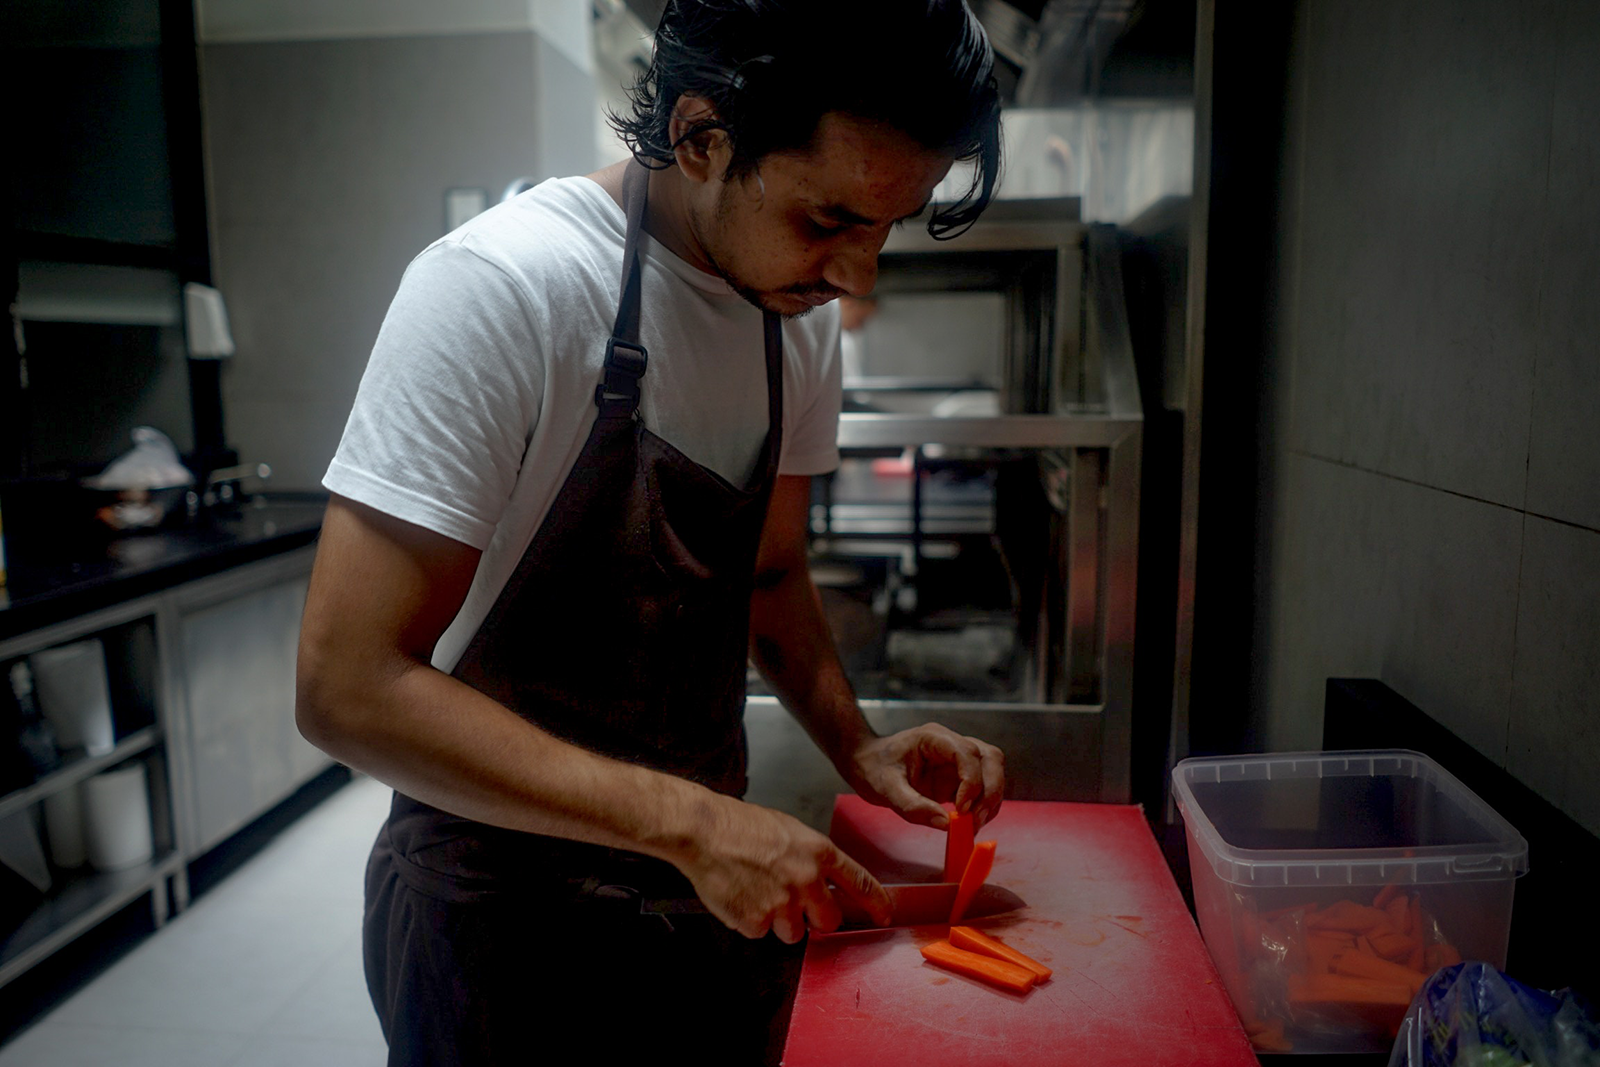 Head Chef Tries To Blend Life Lessons With Knife Skills